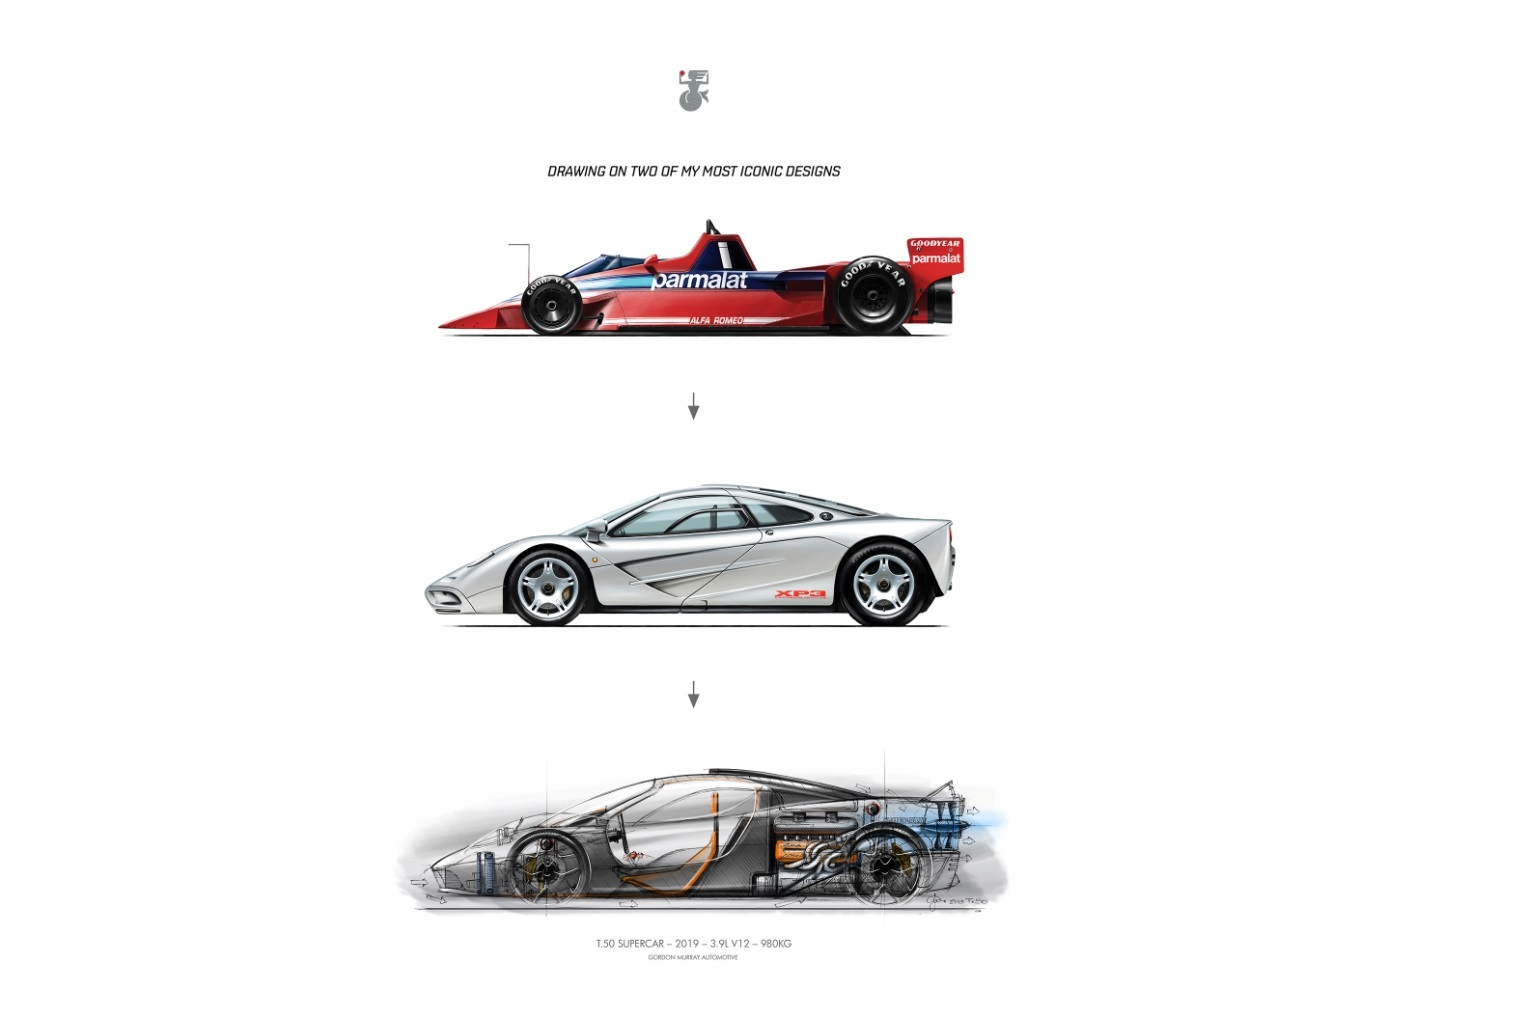 Iconic designs by Gordon Murray